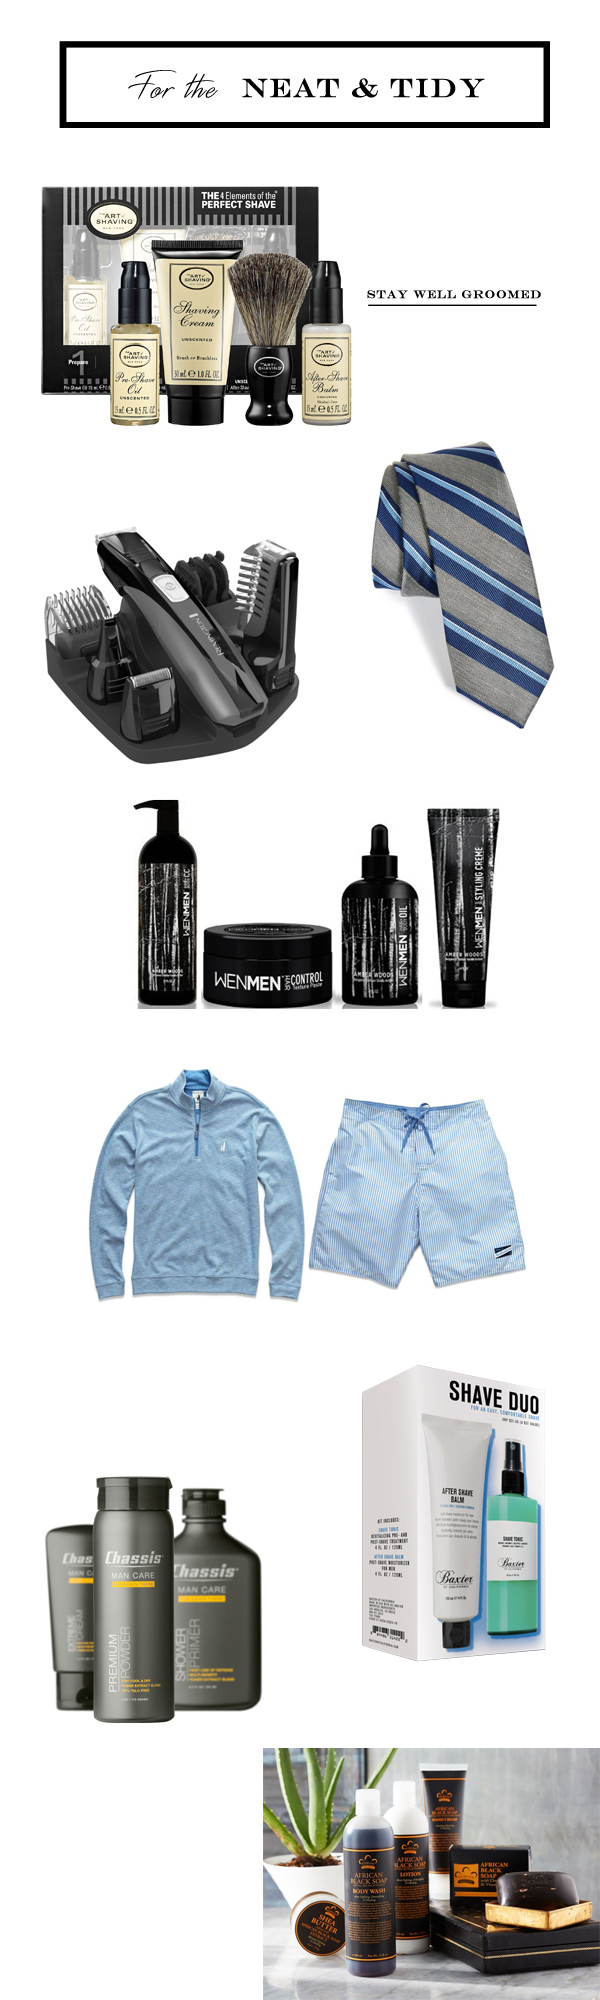 fathers day_gift guide